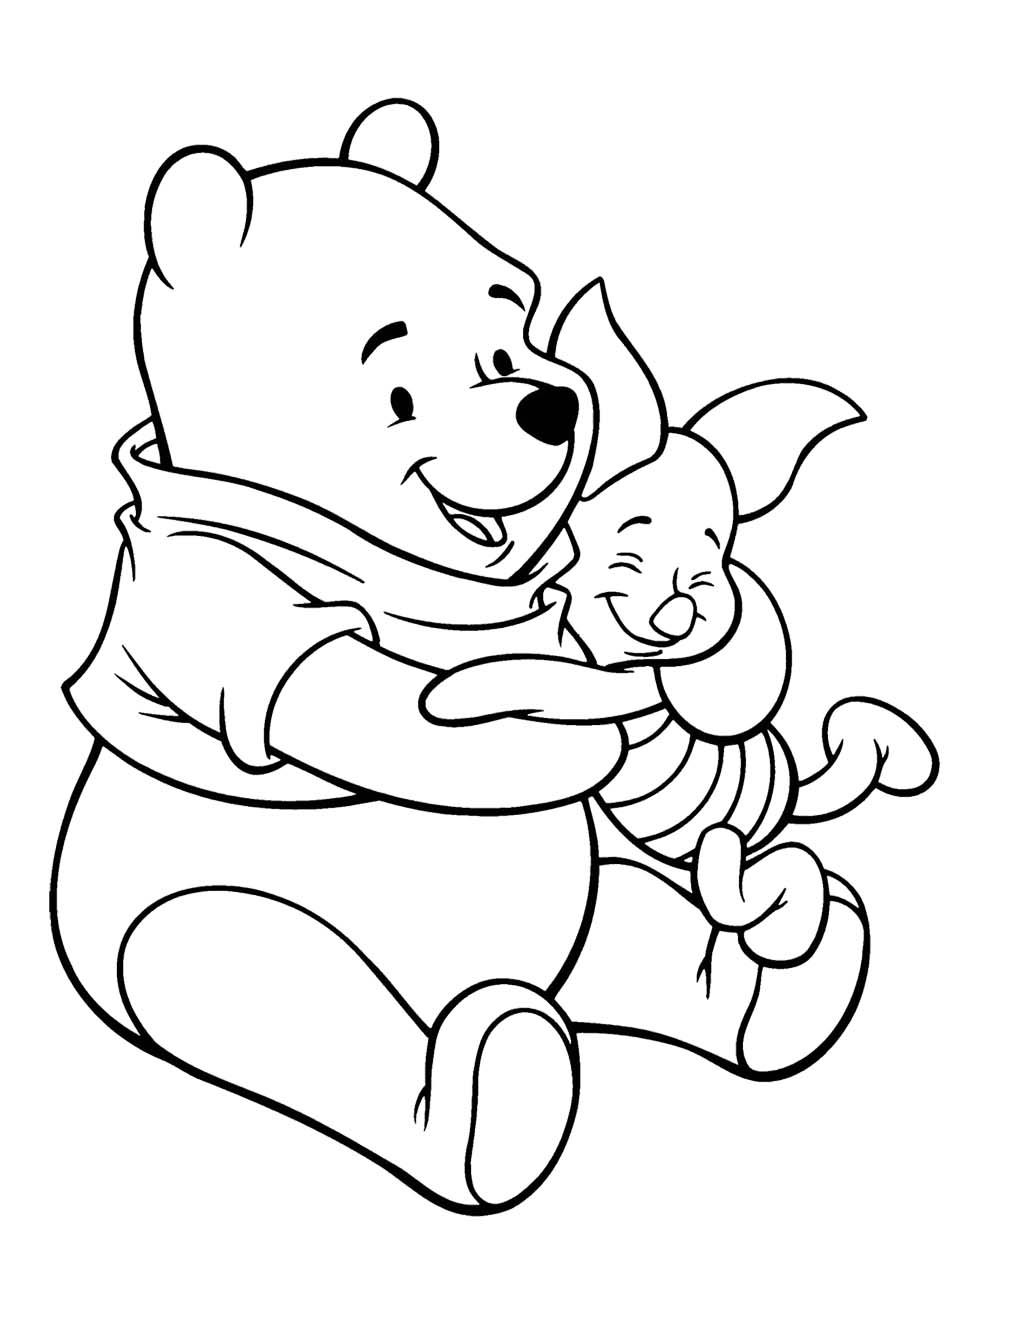 winnie the pooh care with piglet coloring page winnie the pooh